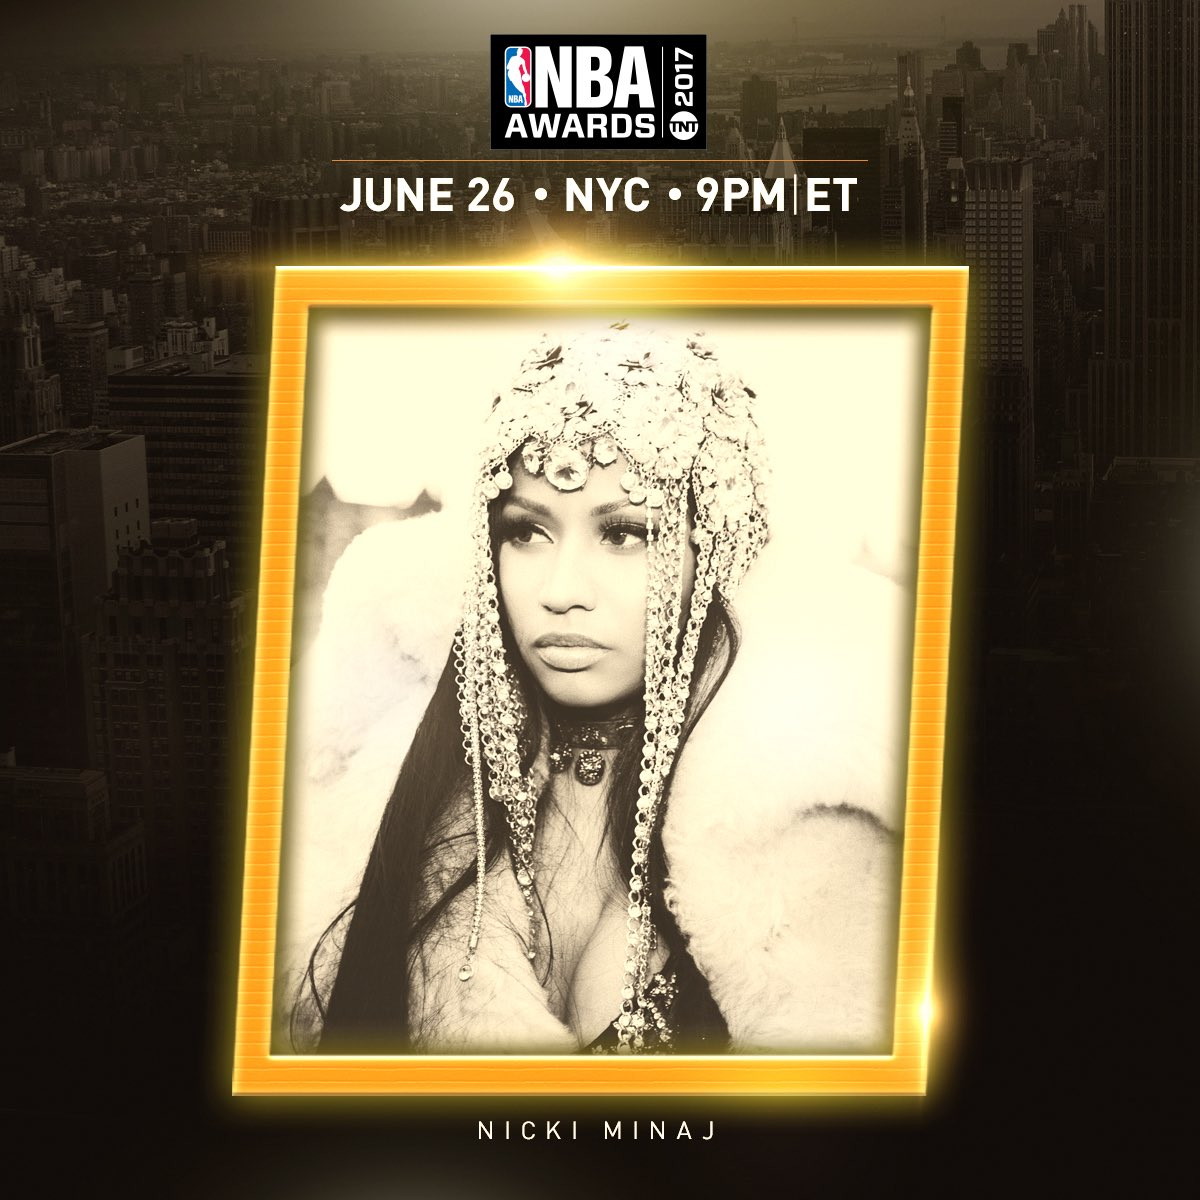 RT @NBA: Tonight's #NBAAwards (9pm/et @NBAonTNT) will feature a special performance by @NICKIMINAJ! https://t.co/x6UdCaDrZX